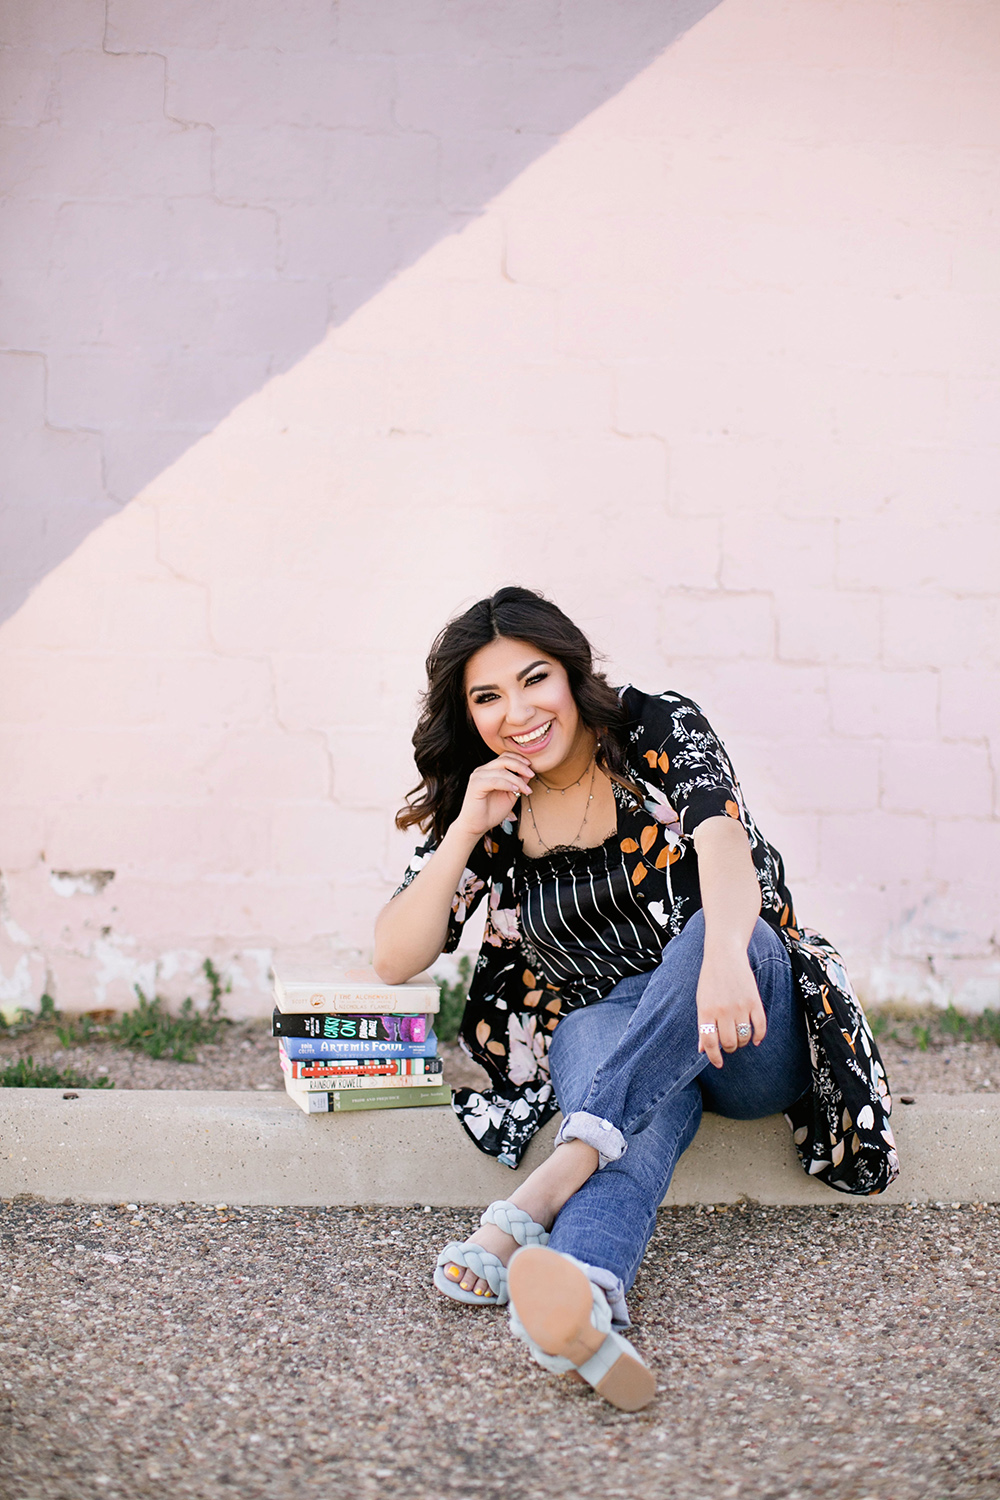 mira-senior-portrait-downtown-lubbock-fun-pink-building.jpg